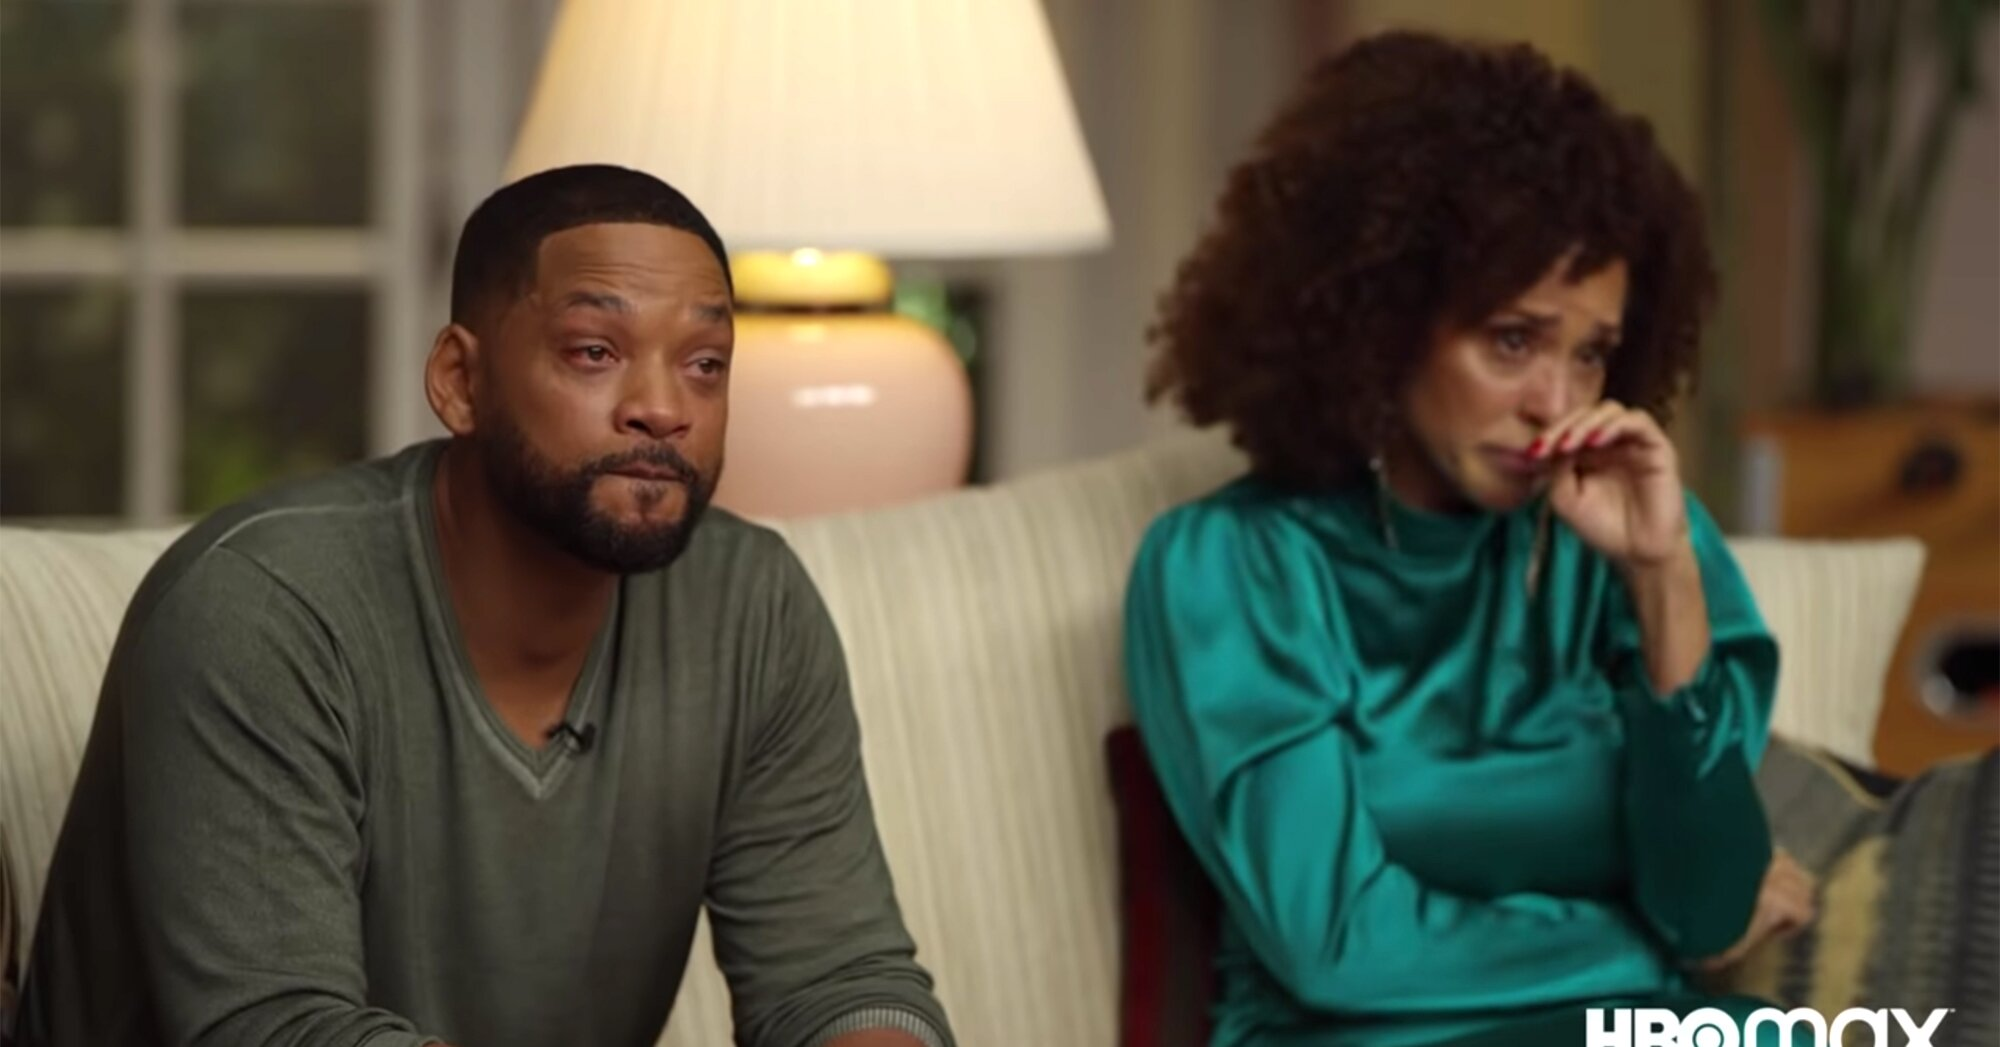 Will Smith and Janet Hubert reconcile in emotional 'Fresh Prince' reunion: 'You're still my Aunt Viv' – Entertainment Weekly